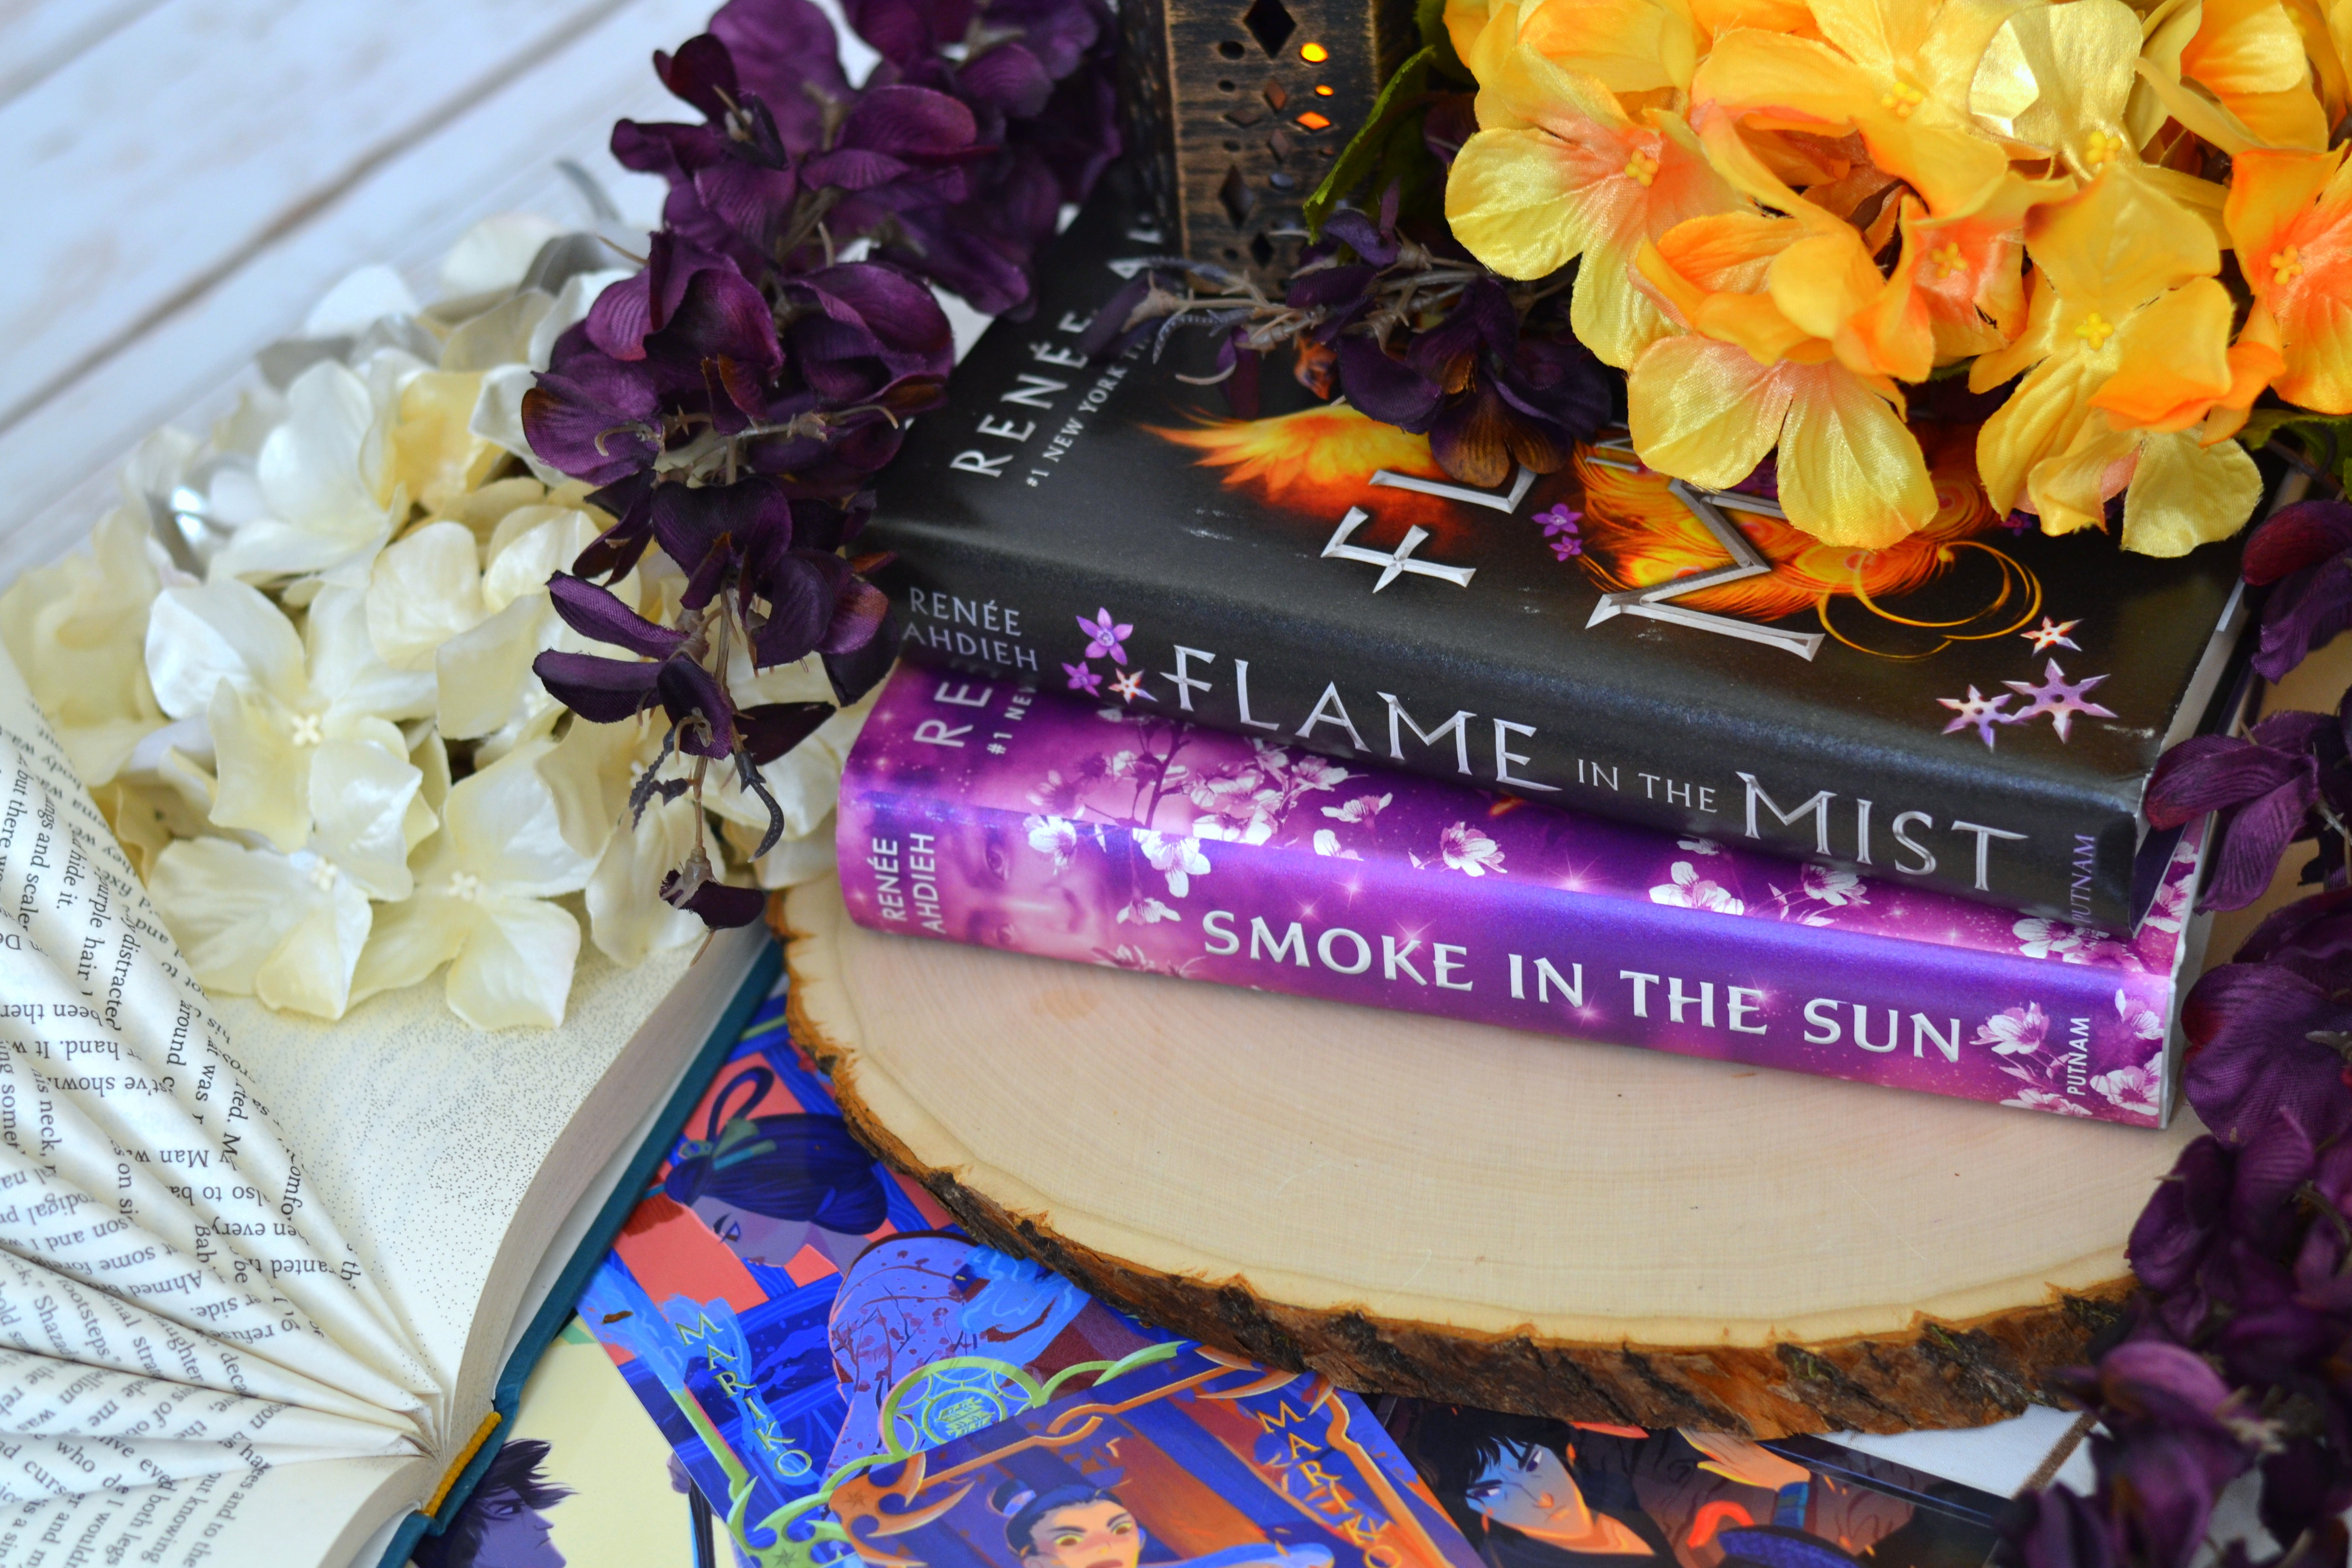 Flame in the Mist by Renee Ahdieh   Review